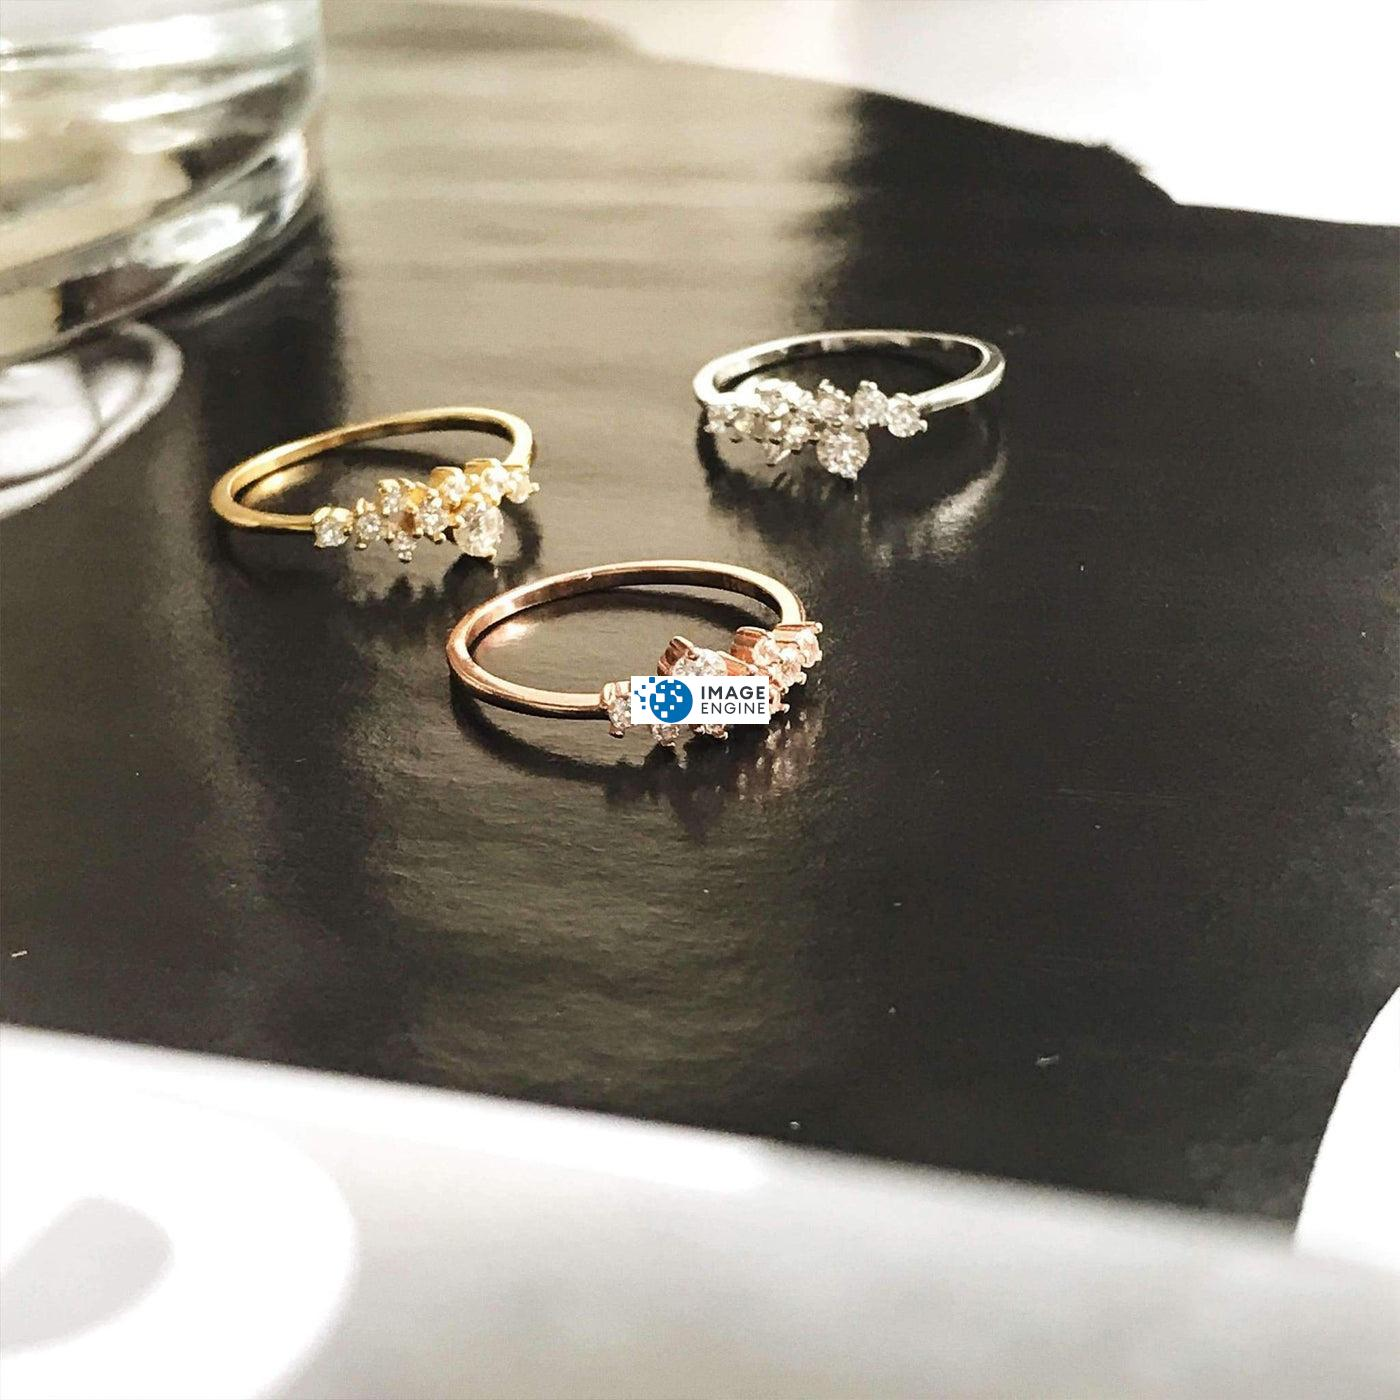 Sasha Sparkle Ring - Trios Spread Out